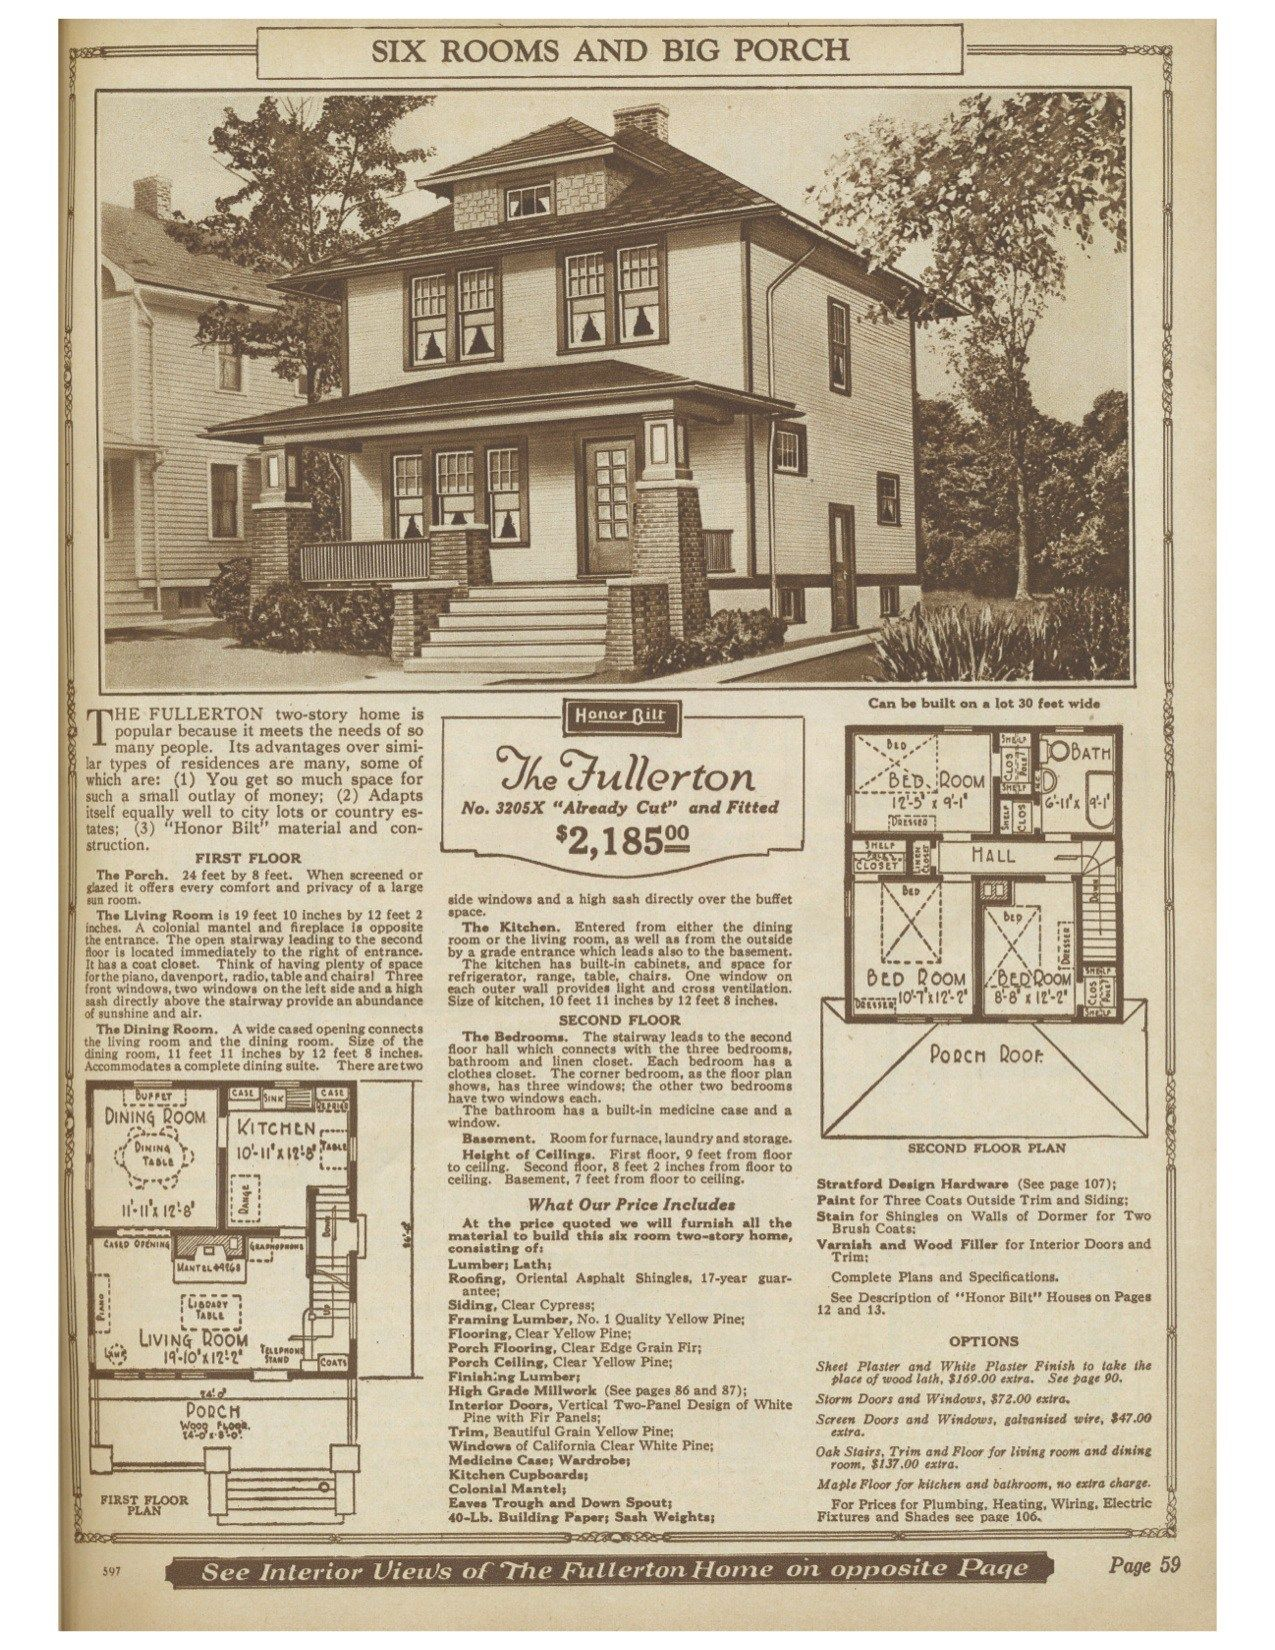 ae8ac3c5b4532d078a06c3549321cbab Sears Catalog Home Plans on sears and roebuck homes, old sears roebuck home plans, early-1900s bungalow home plans, manor house plans, sears craftsman homes plans, sears kit home plans, window plans, vintage sears home plans, sears black friday now 2013, sears style home plans, prefabricated home plans, sears kit homes 1900s, 1916 antique home plans, sears mail order house plans, old craftsman style home plans, sears home plans 1945, lean-to plans, foyer plans, architect plans, mobile home plans,